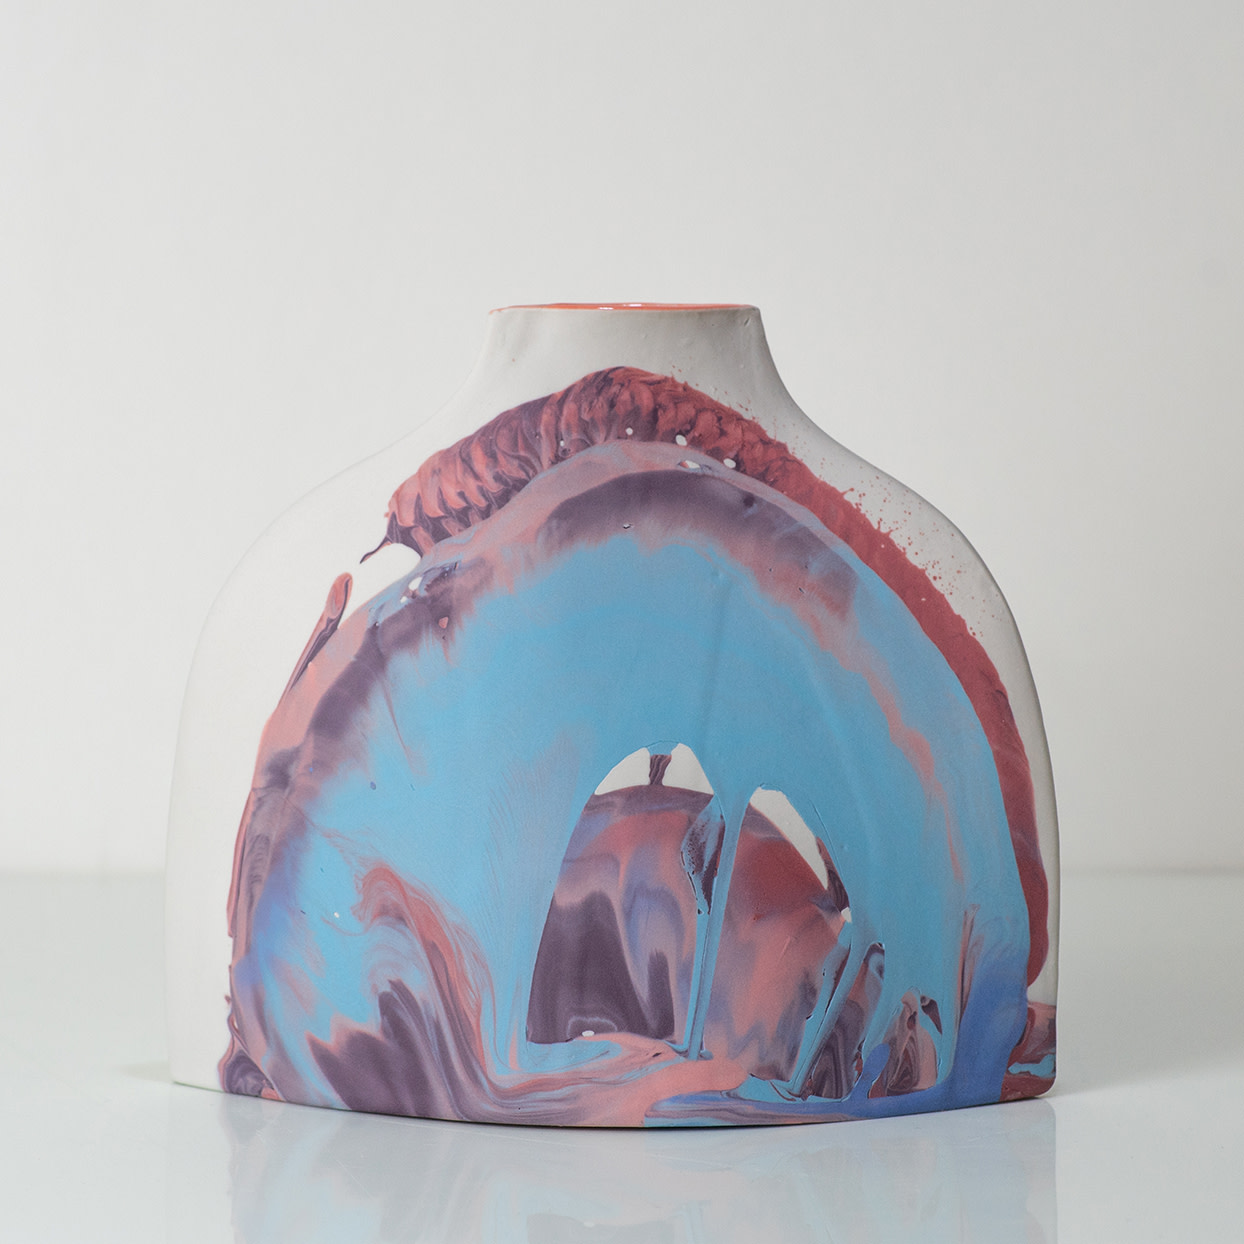 "<span class=""link fancybox-details-link""><a href=""/artists/219-james-pegg/works/6093-james-pegg-shoulder-vase-2019/"">View Detail Page</a></span><div class=""artist""><strong>James Pegg</strong></div> <div class=""title""><em>Shoulder Vase</em>, 2019</div> <div class=""medium"">action-cast stained porcelain with glazed interior <br />  (in collaboration with Lucia Fraser)</div> <div class=""dimensions"">h 20 cm x w 17.5 cm</div><div class=""price"">£205.00</div><div class=""copyright_line"">OwnArt: £ 20.50 x 10 Months, 0% APR </div>"